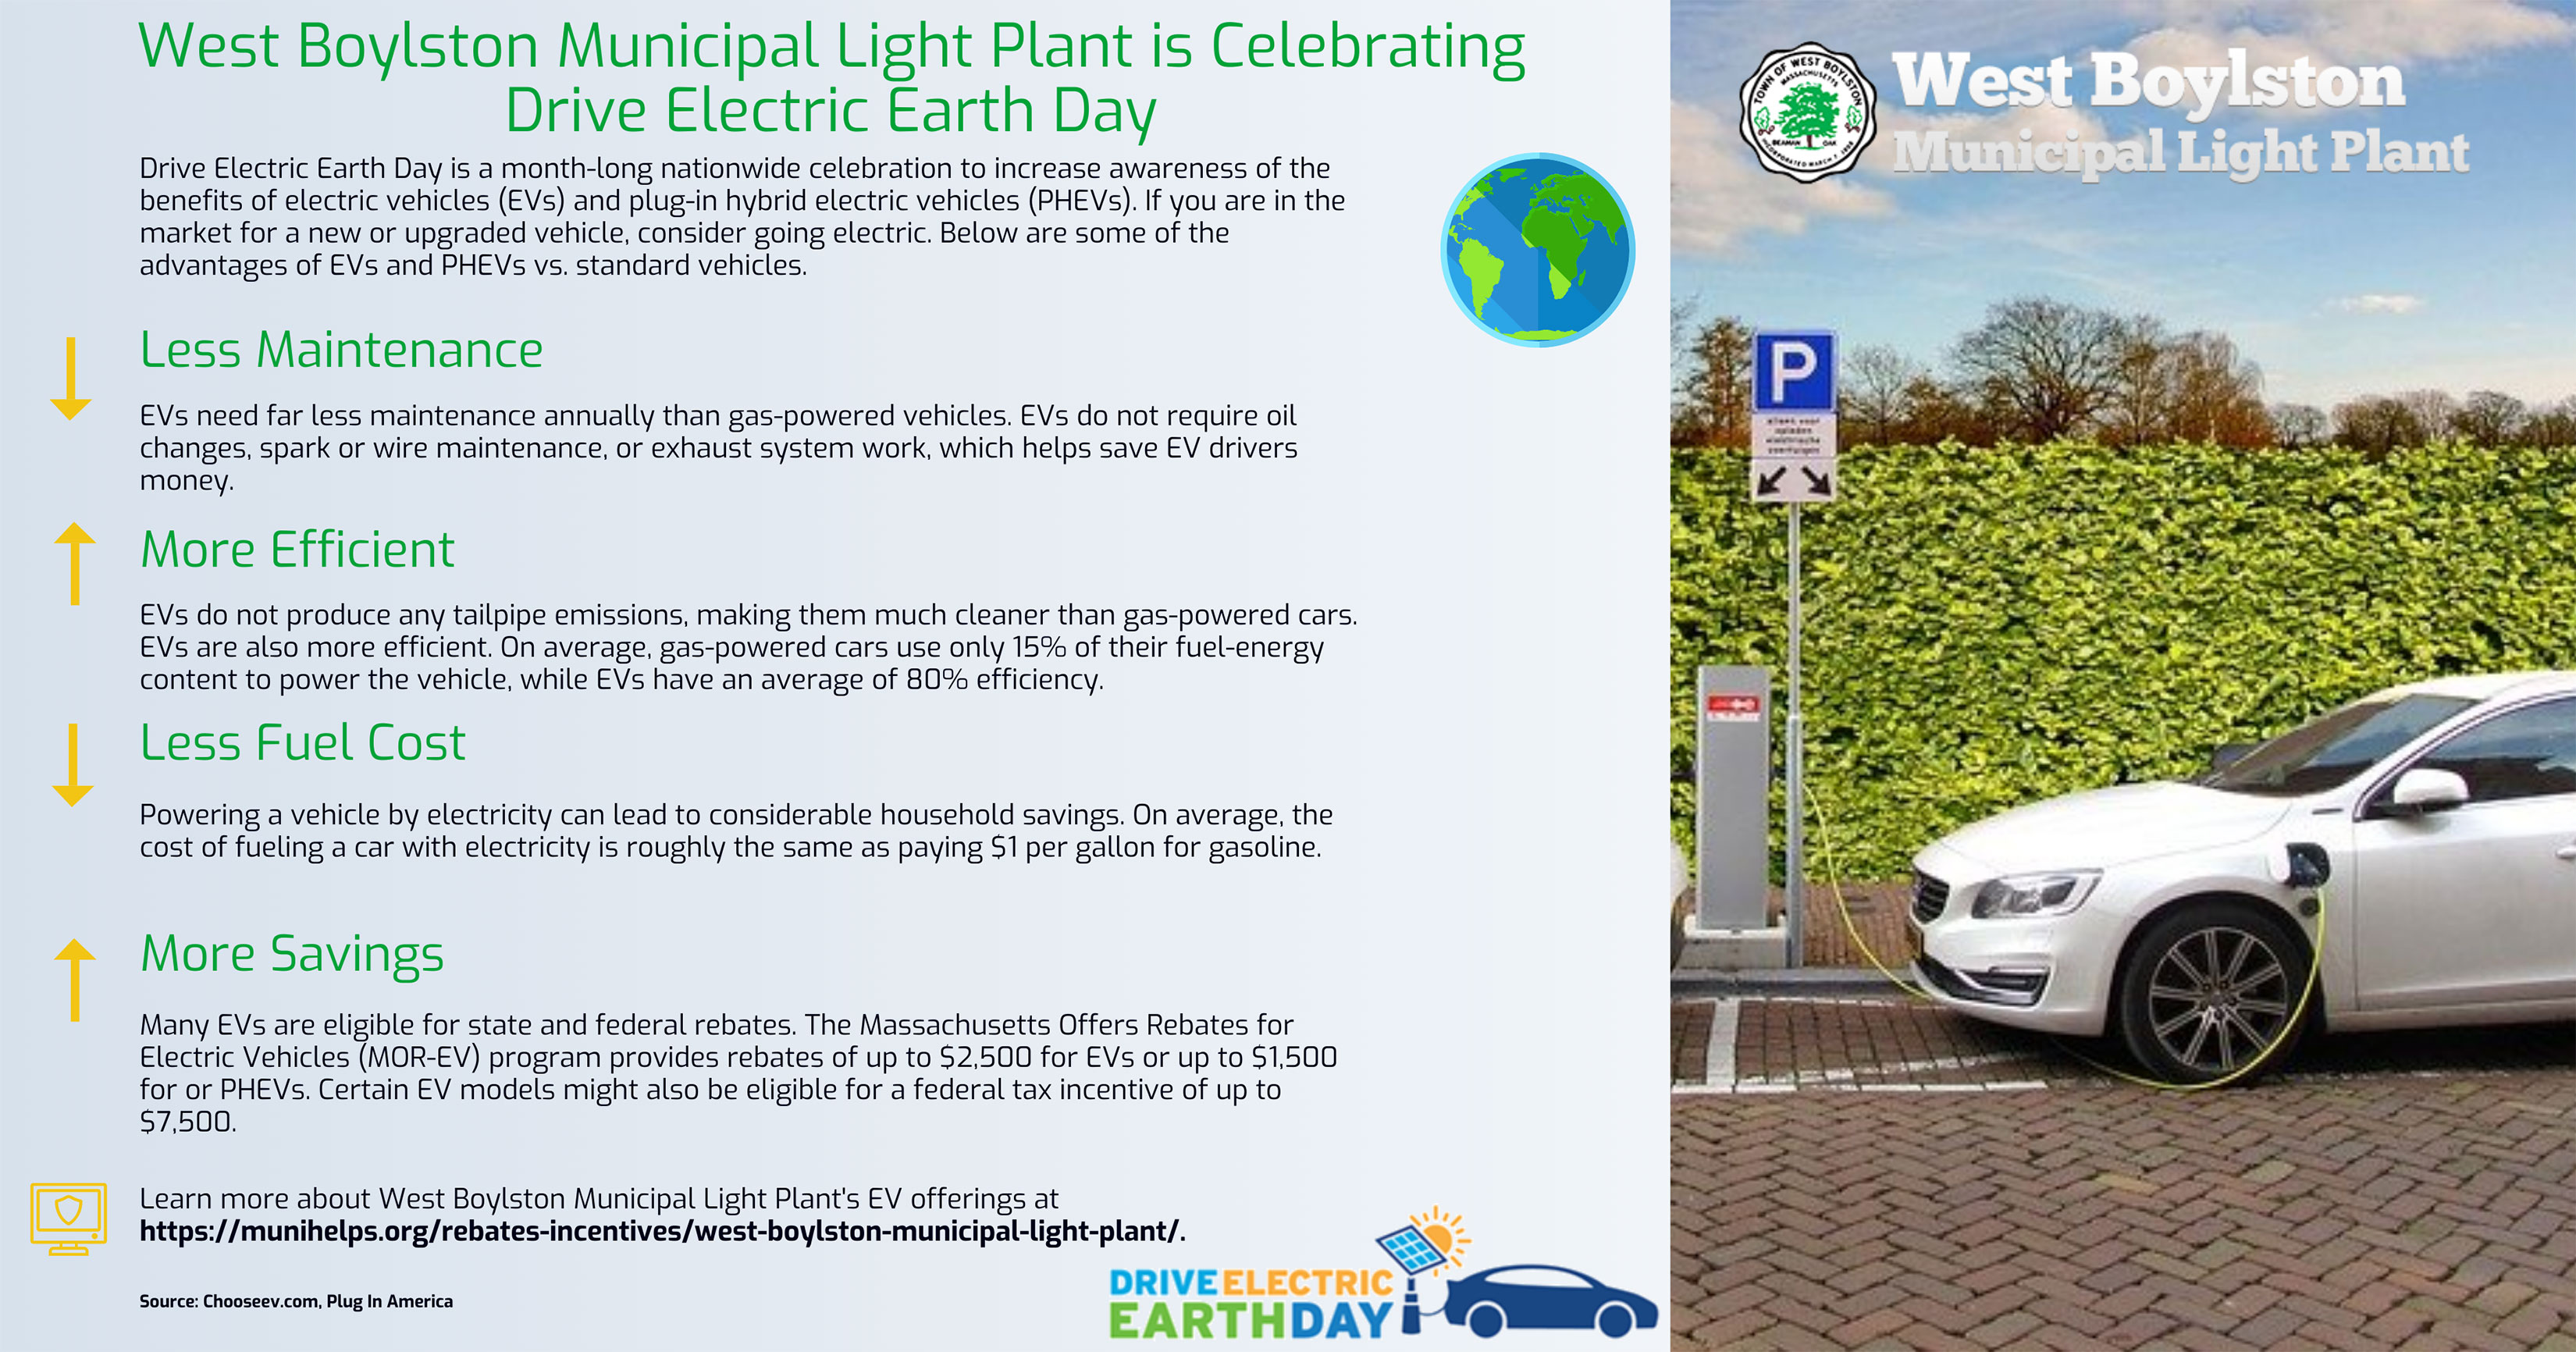 WBMLP DRIVE ELECTRIC EARTH DAY POSTER